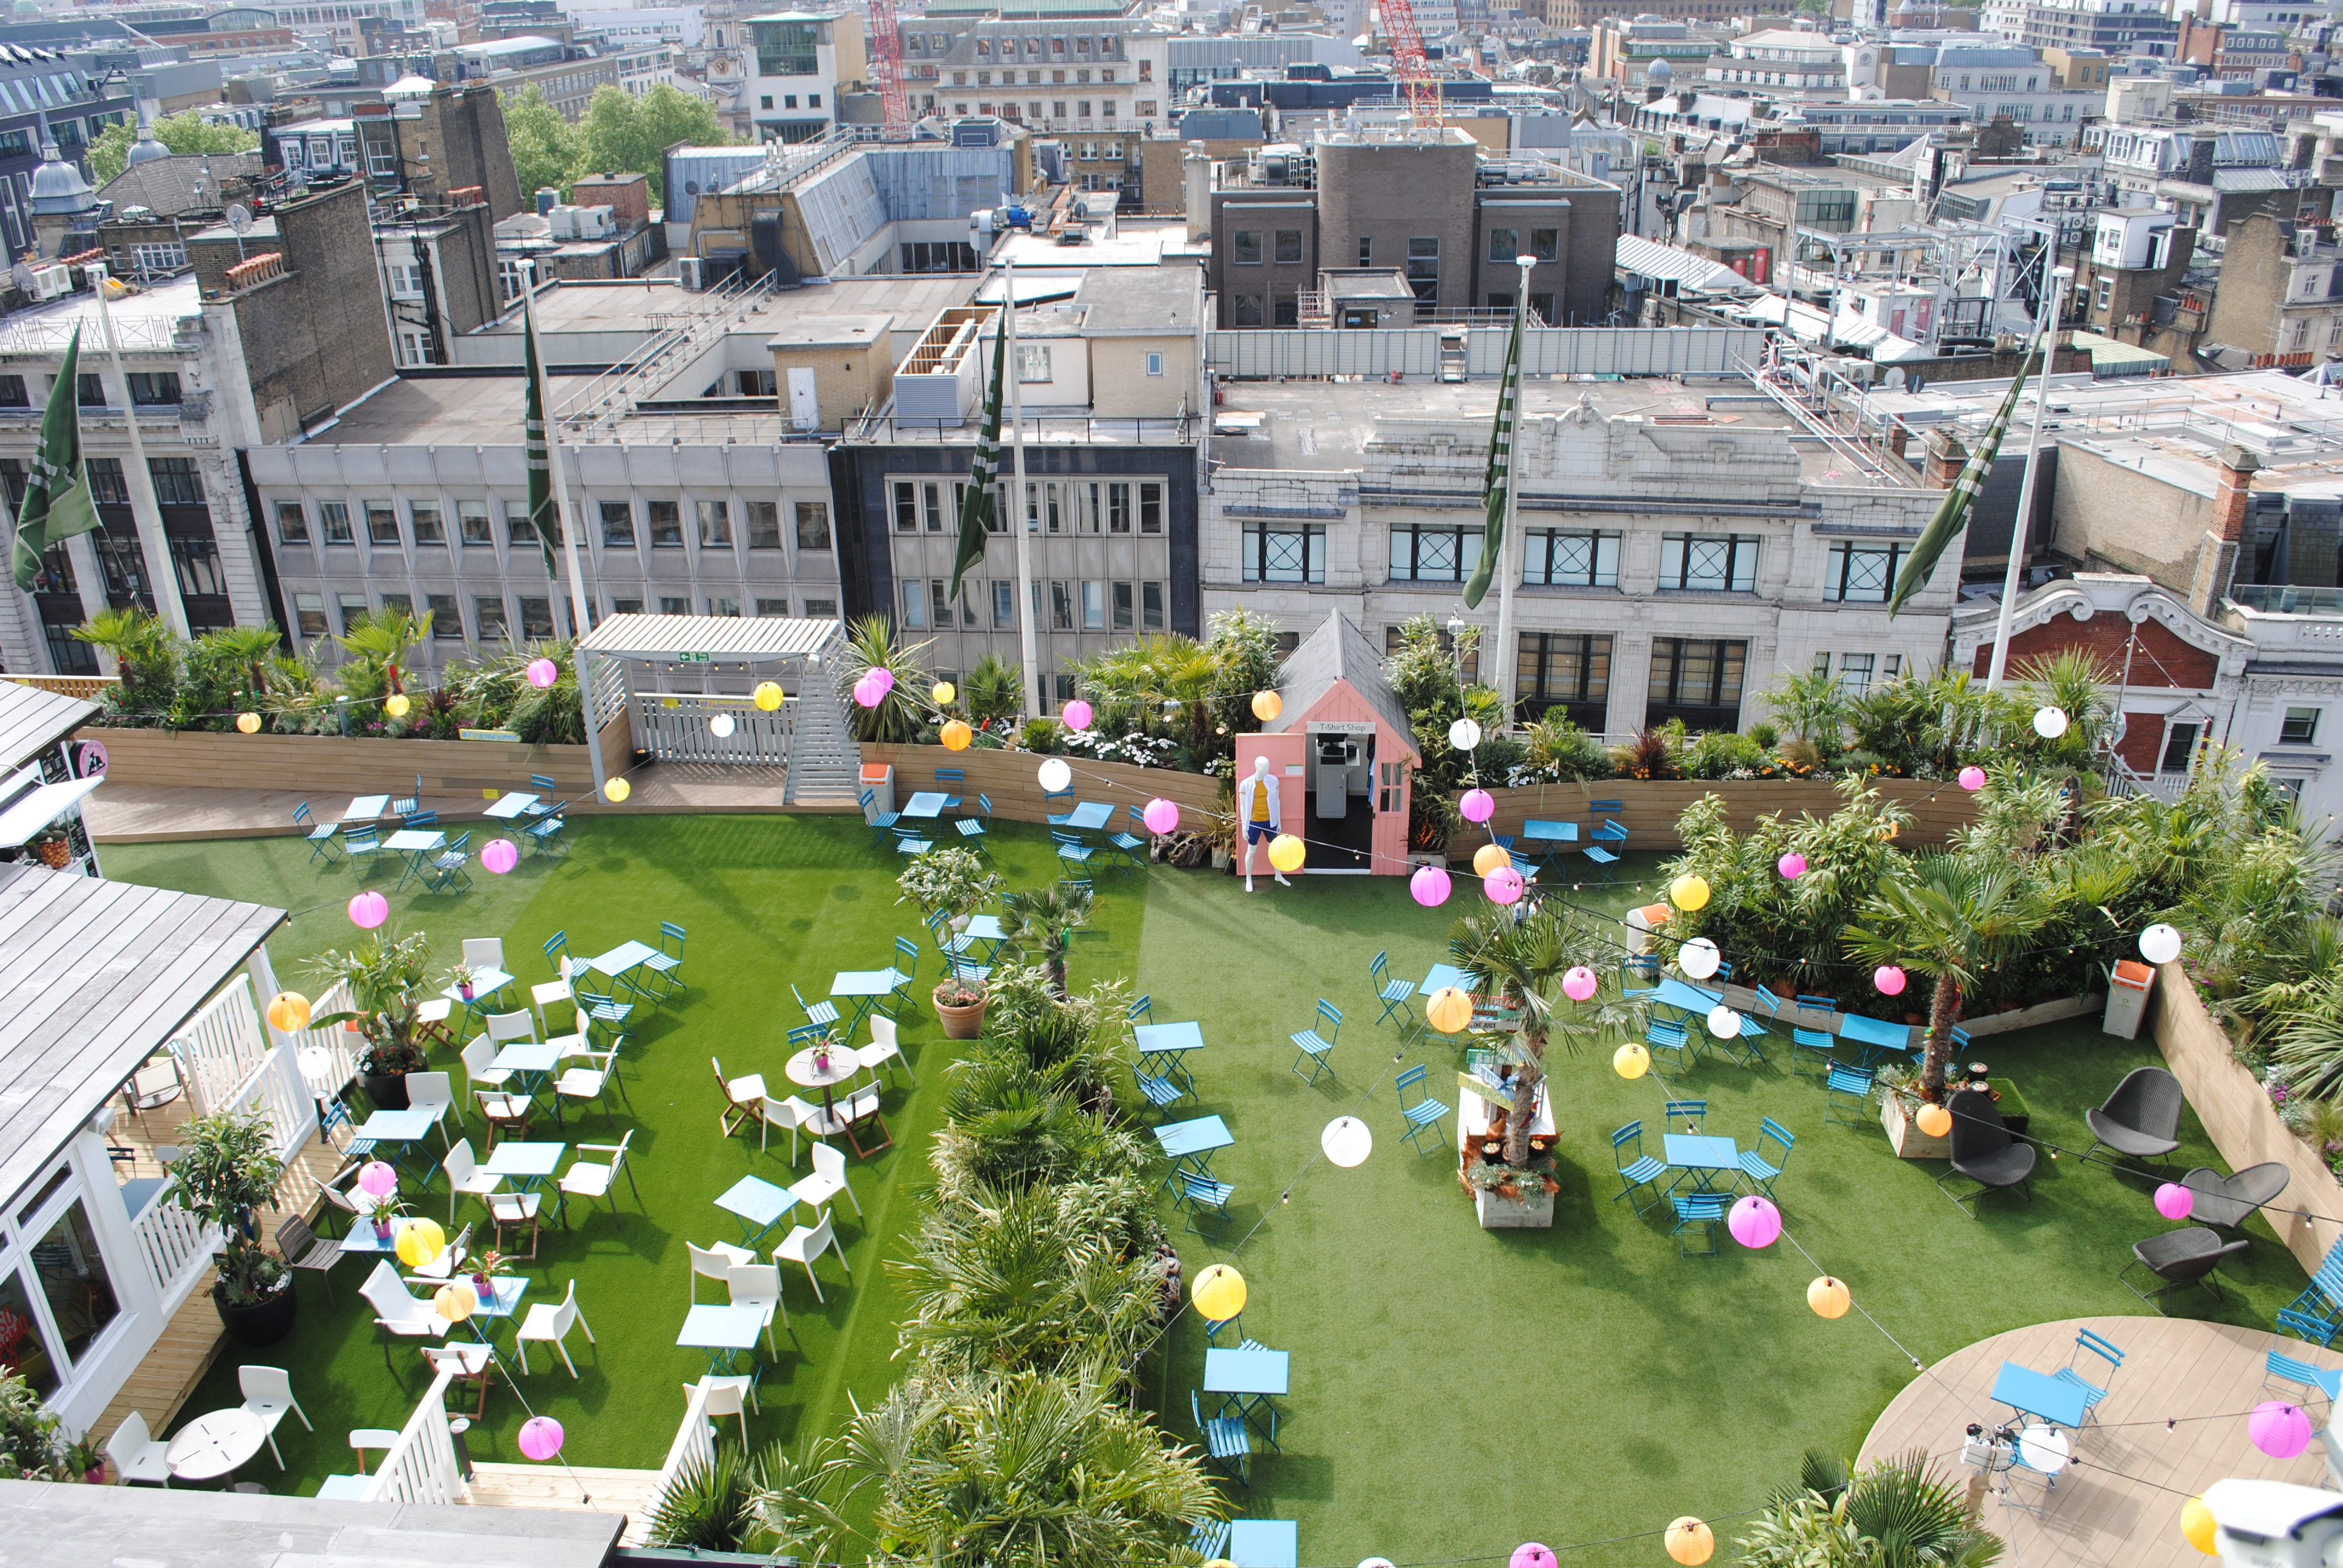 Rooftop garden for John Lewis' 150th birthday